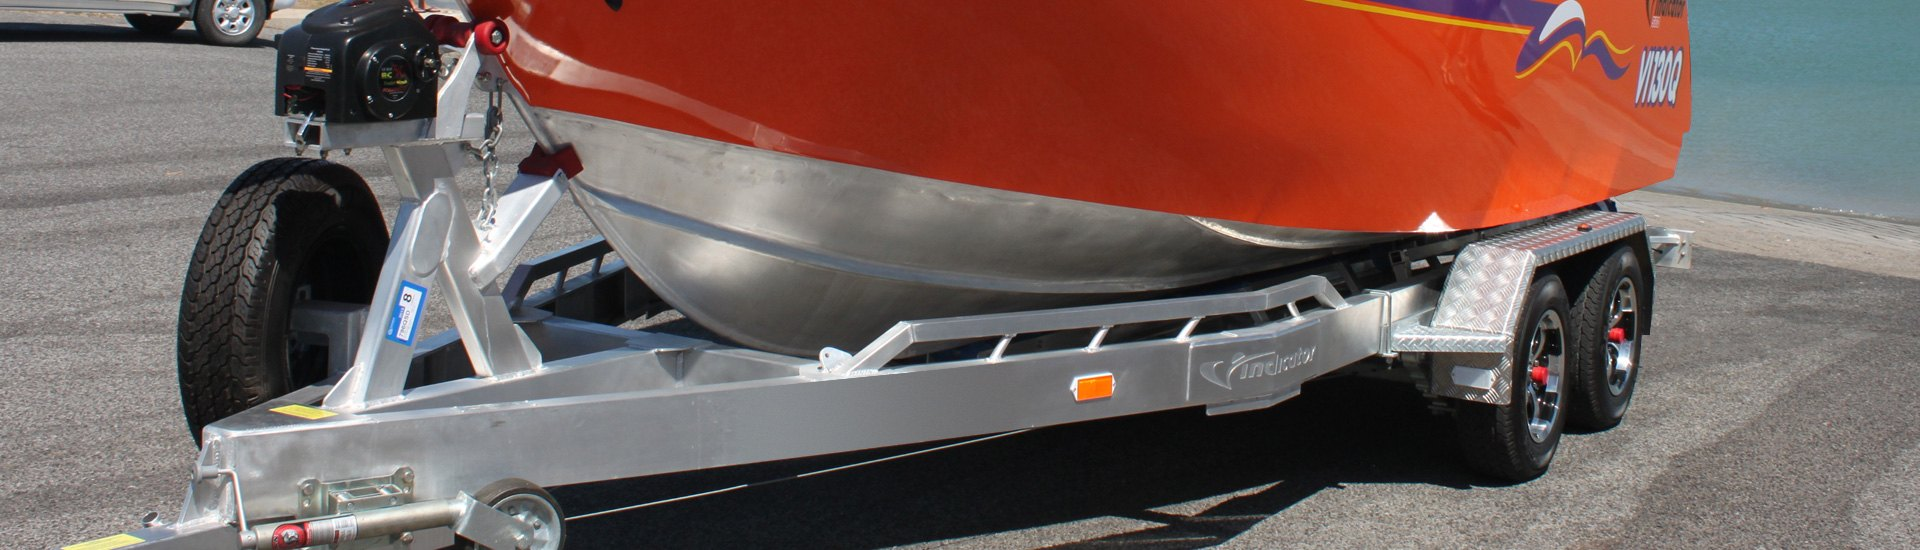 Do You Dip Your Boat Trailer In The Water? Take a Look Here